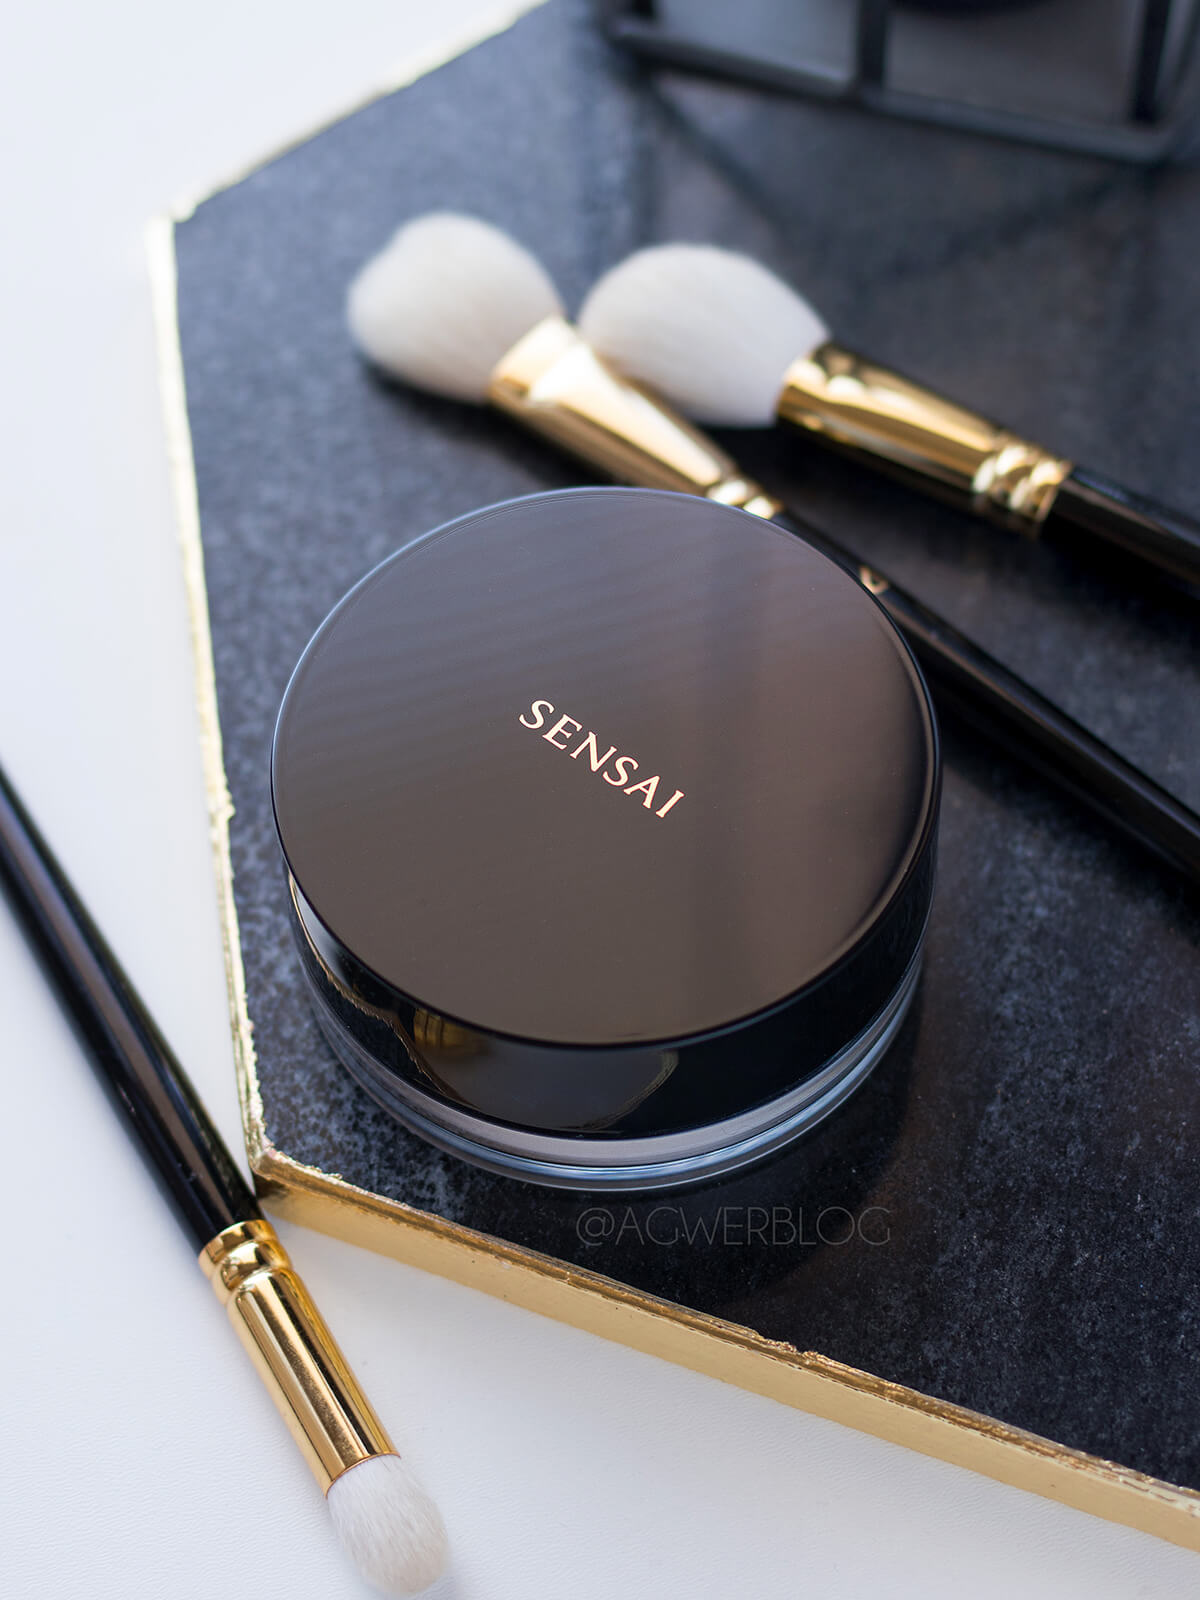 Sensai Translucent Loose Powder blog